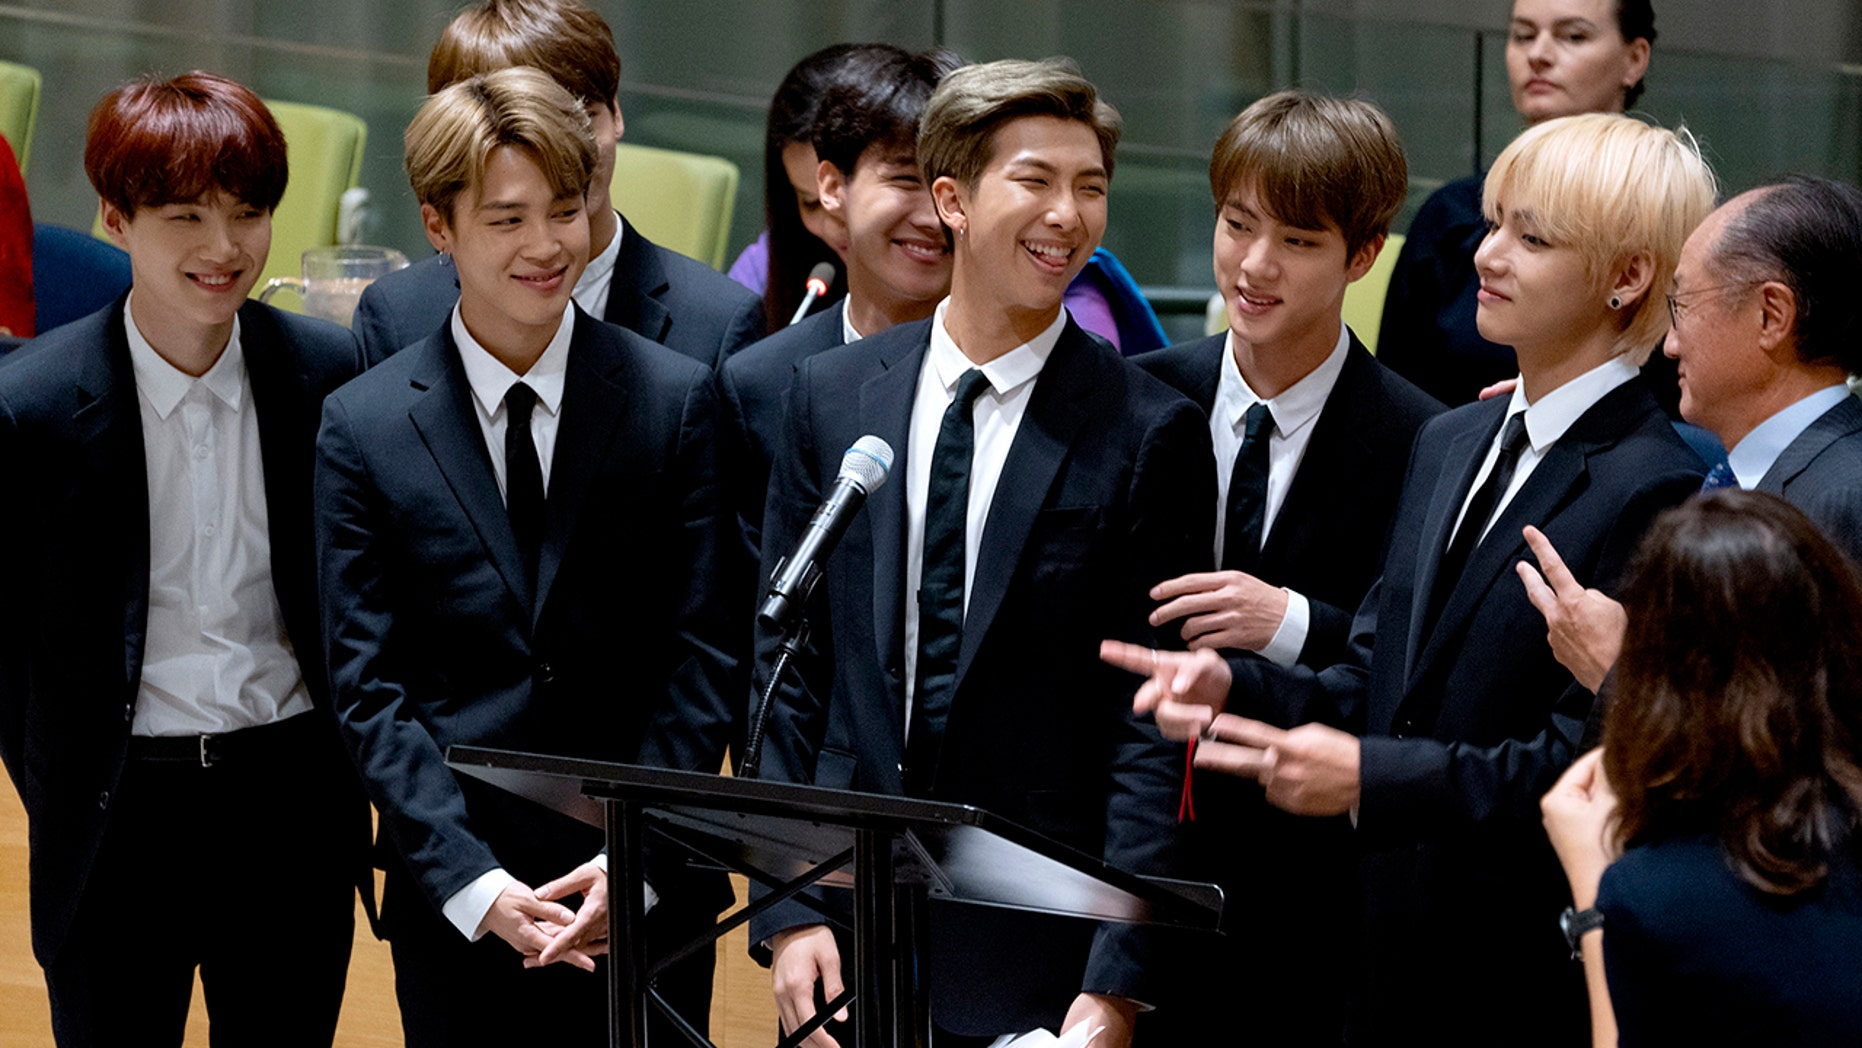 A Japanese broadcaster canceled a live TV appearance of the Korean band BTS after a photo went viral of a band member wearing a T-shirt showing an atomic bombing juxtaposed with the celebration of Korea's liberation from Japan after World War II.